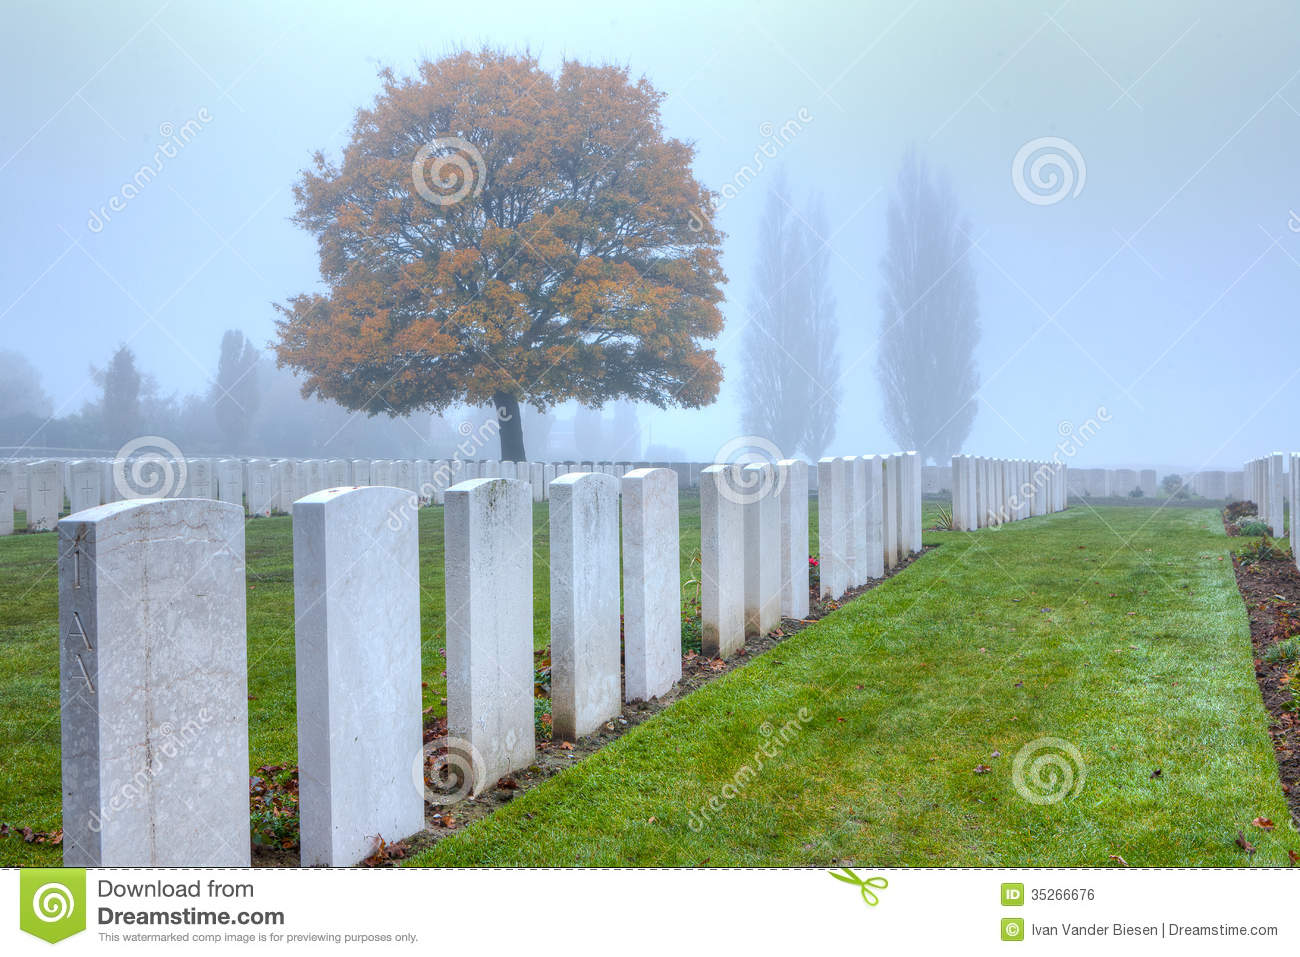 Graves of WWI soldiers at Tyne Cot, Flanders Fields